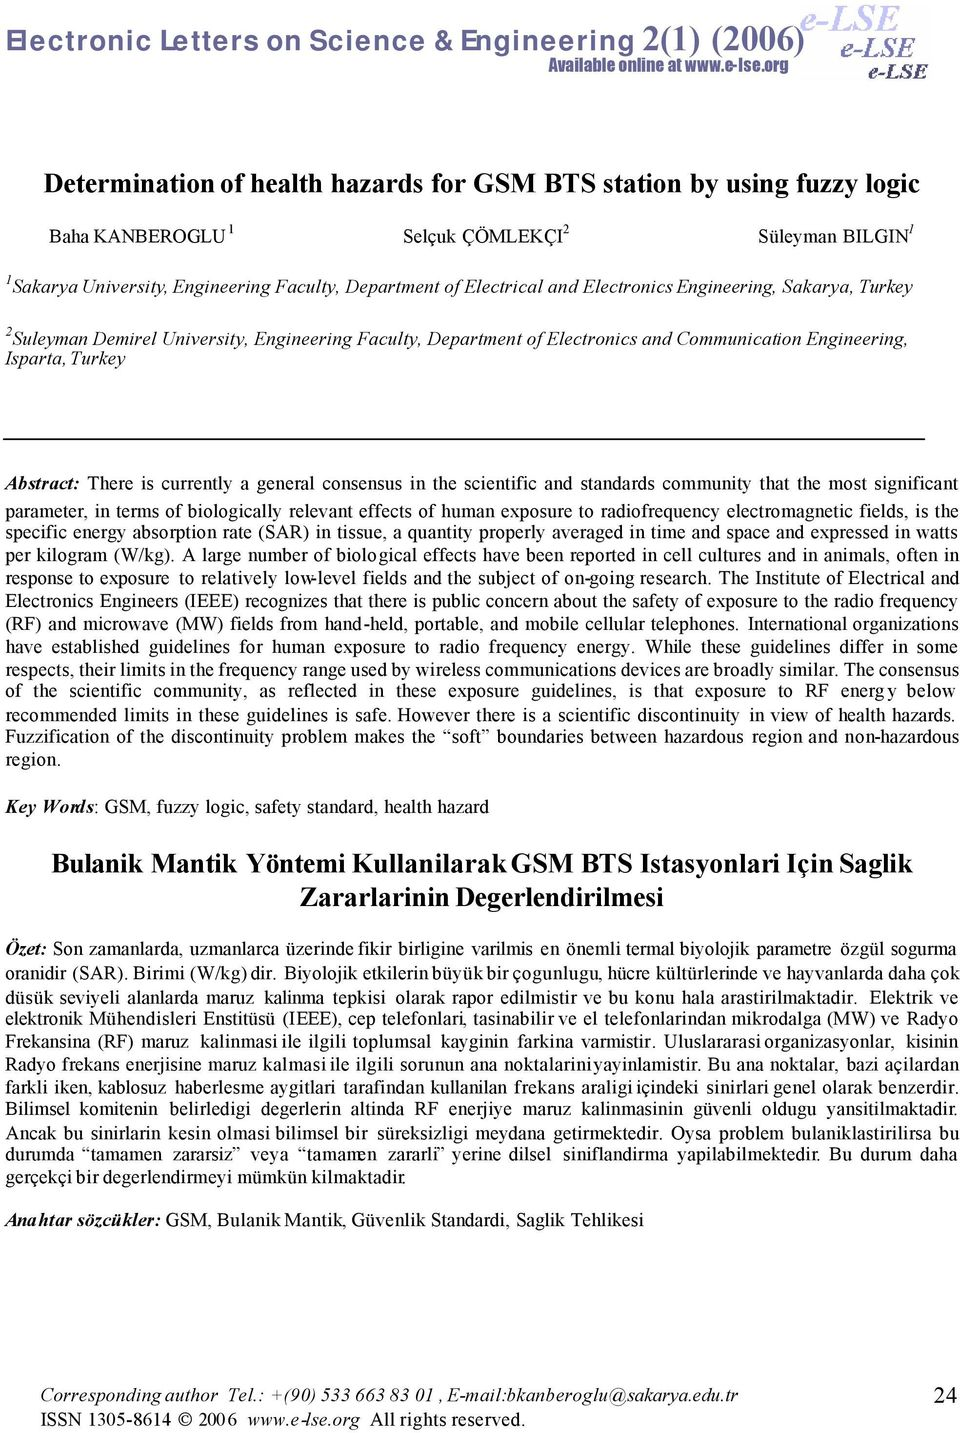 lectronics ngineering, Sakarya, Turkey 2 Suleyman Demirel University, ngineering Faculty, Department of lectronics and Communication ngineering, Isparta, Turkey Abstract: There is currently a general